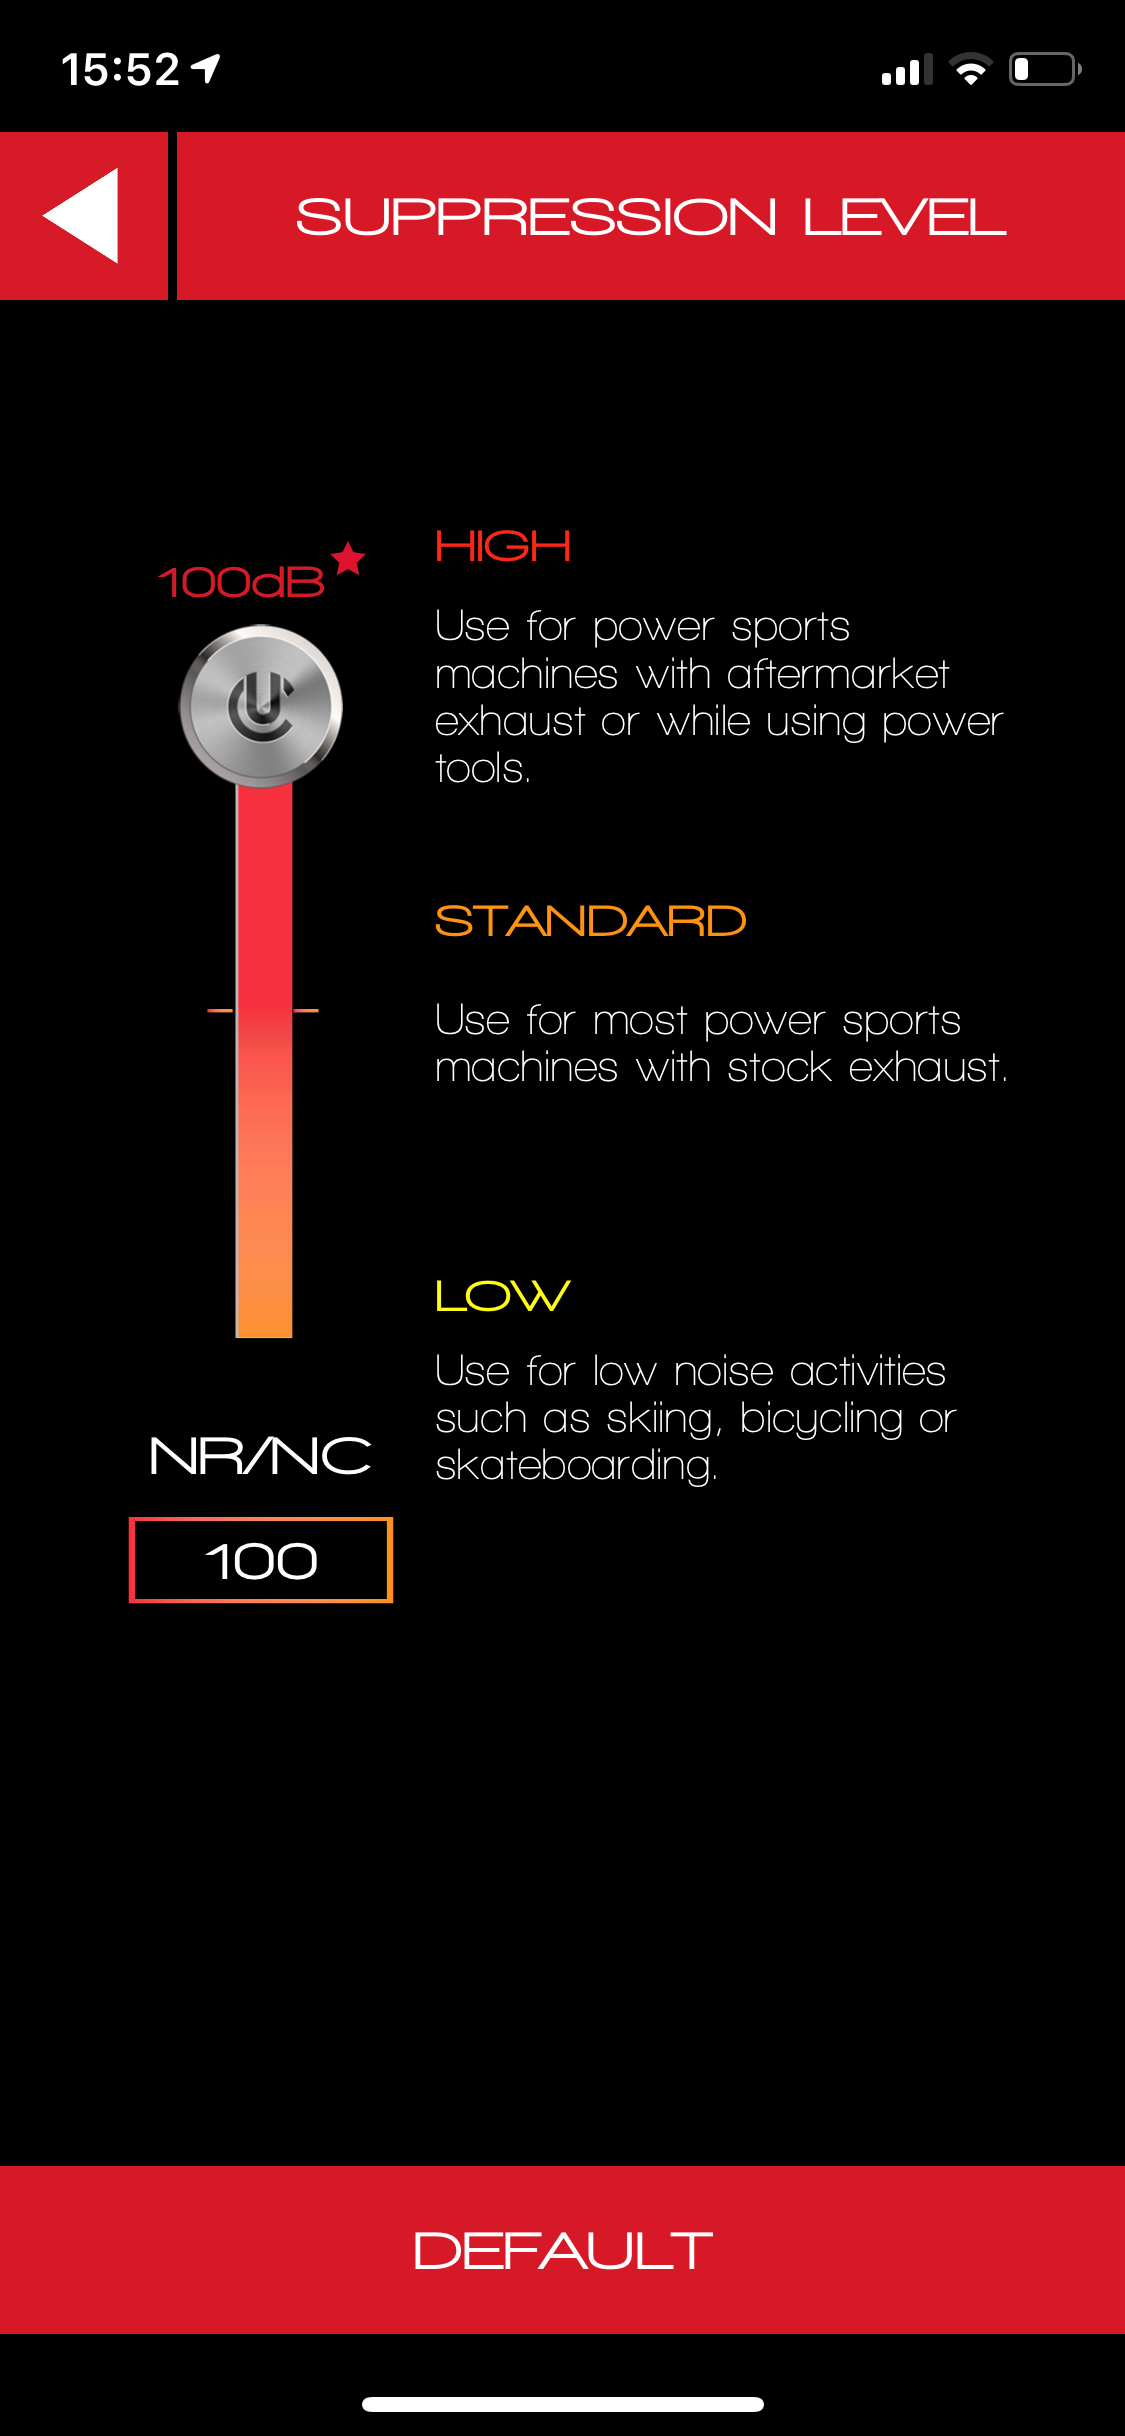 CLEARLink-Noise-Suppression-Level100